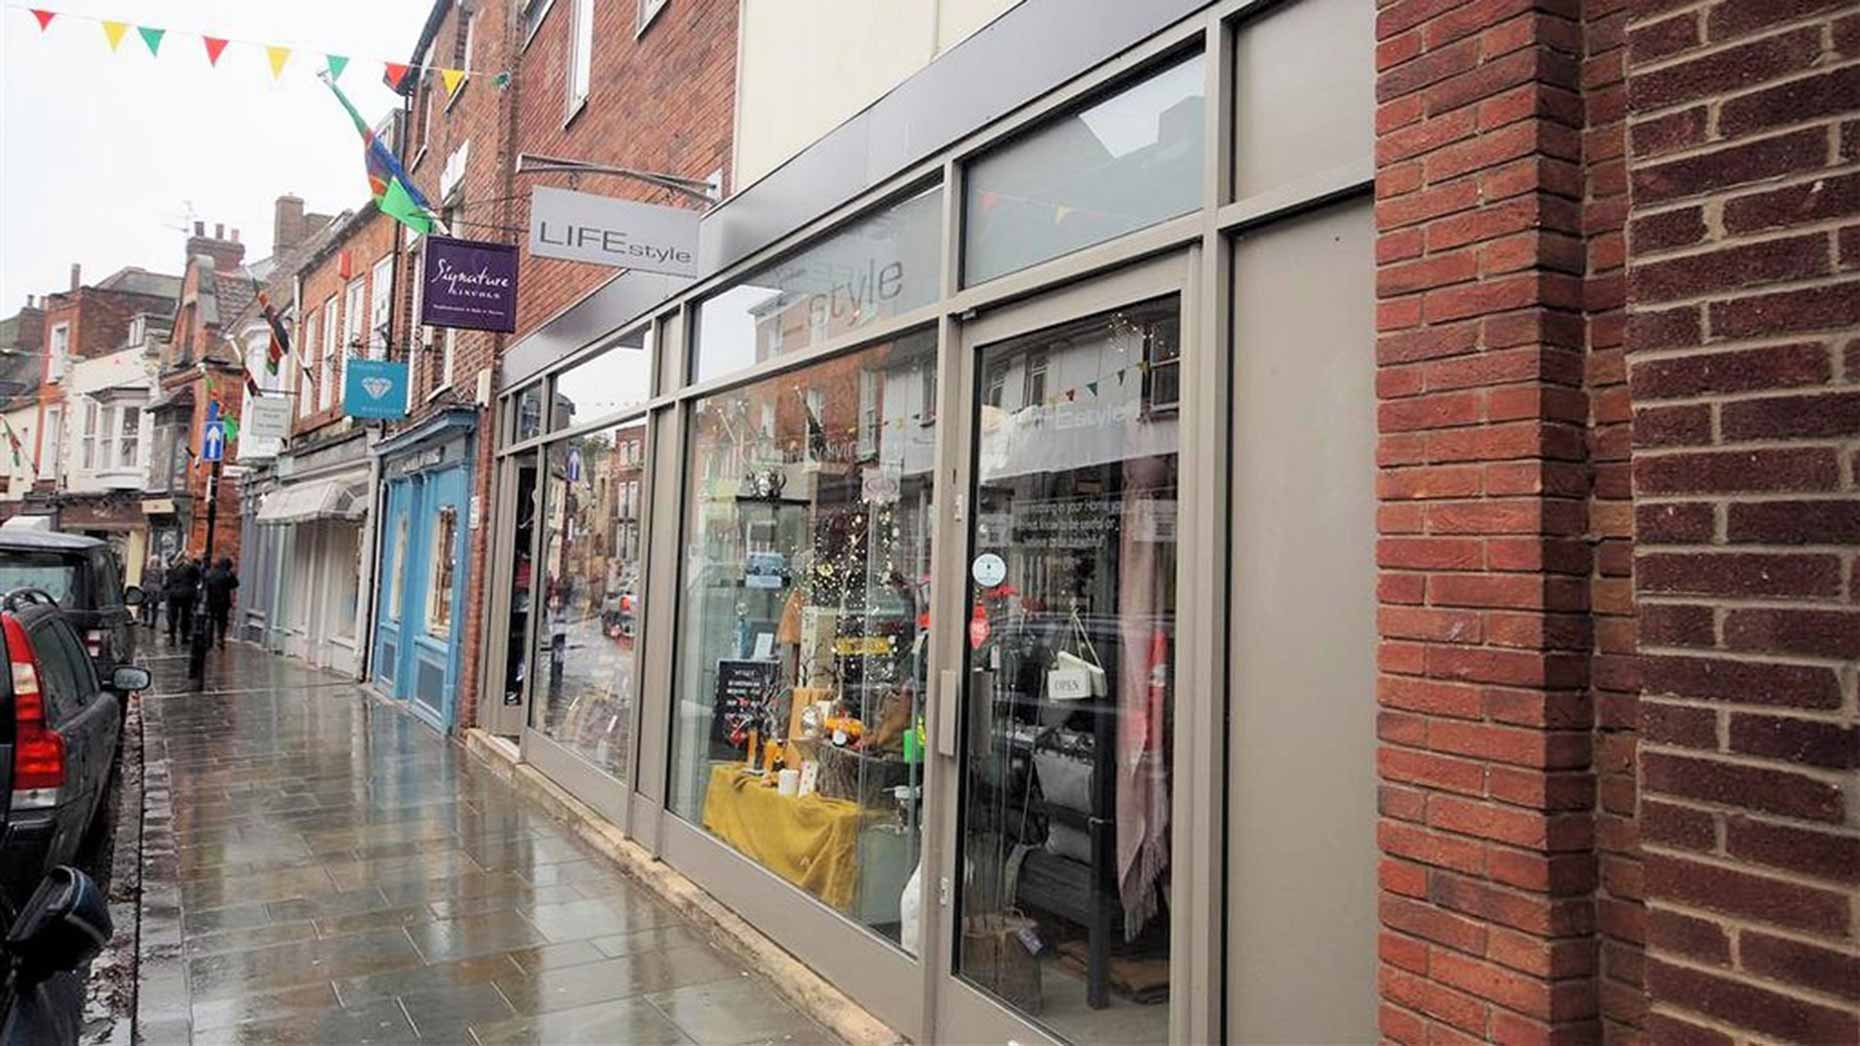 4aeb96c1d0f5f A 'successful' giftware shop located in the Bailgate area of Lincoln is  looking for a new owner.